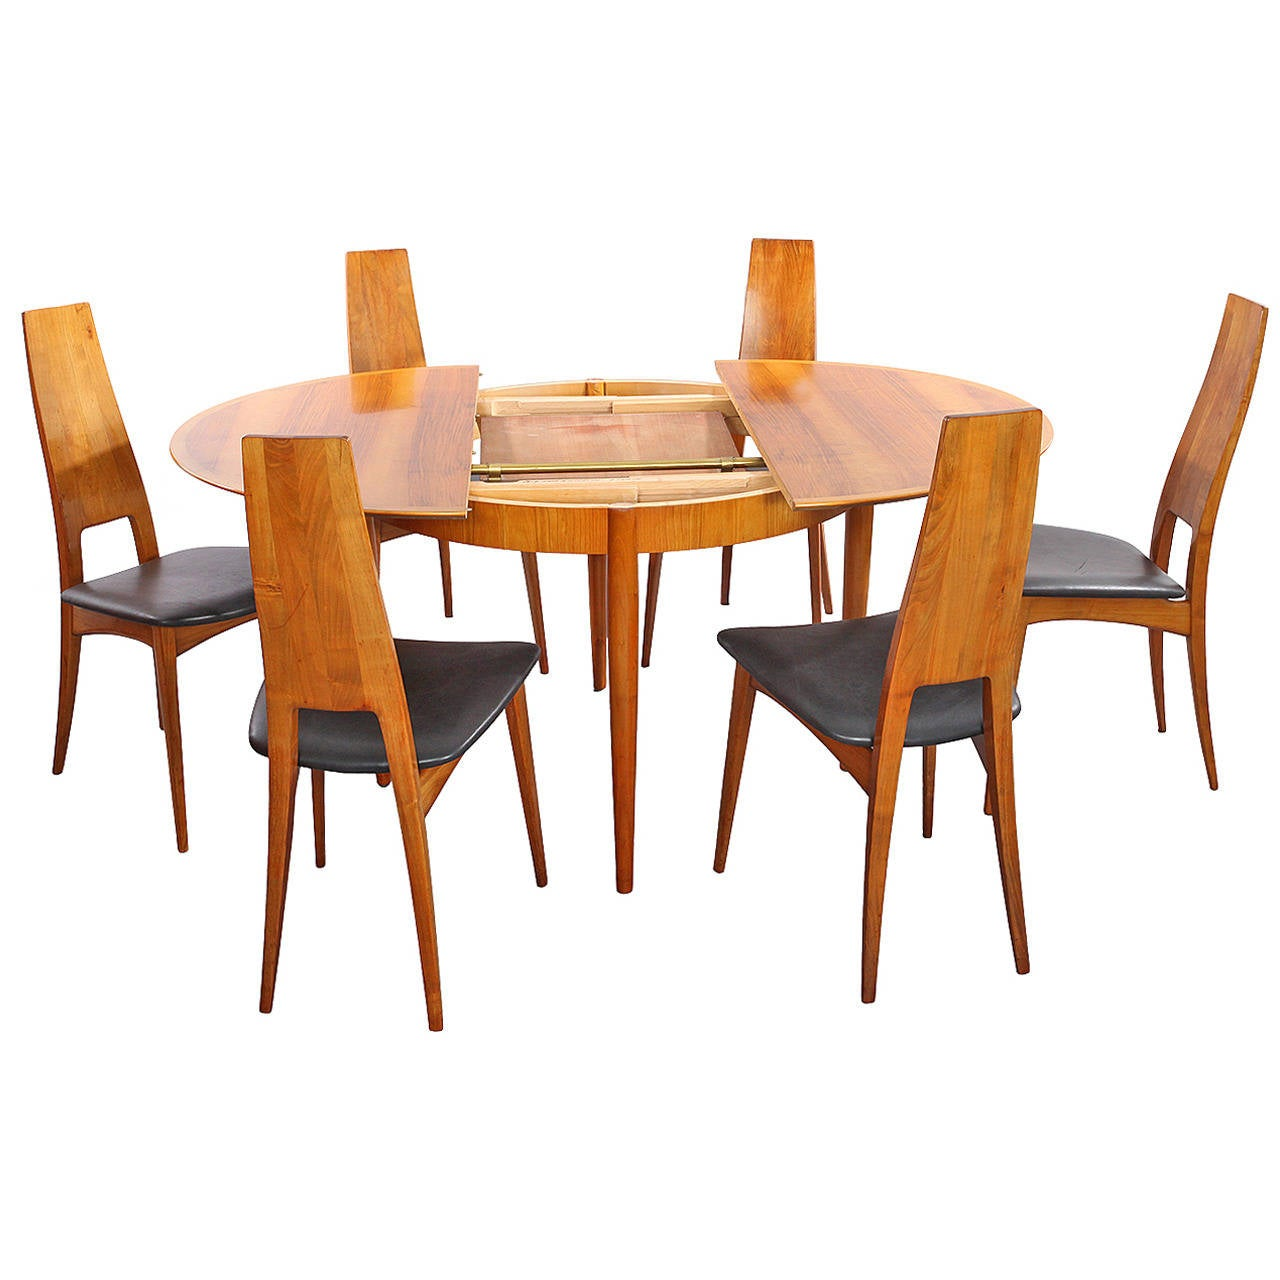 Extendable Dining Table With Six Chairs, Solid Cherry, Production Lübke 1 Part 27